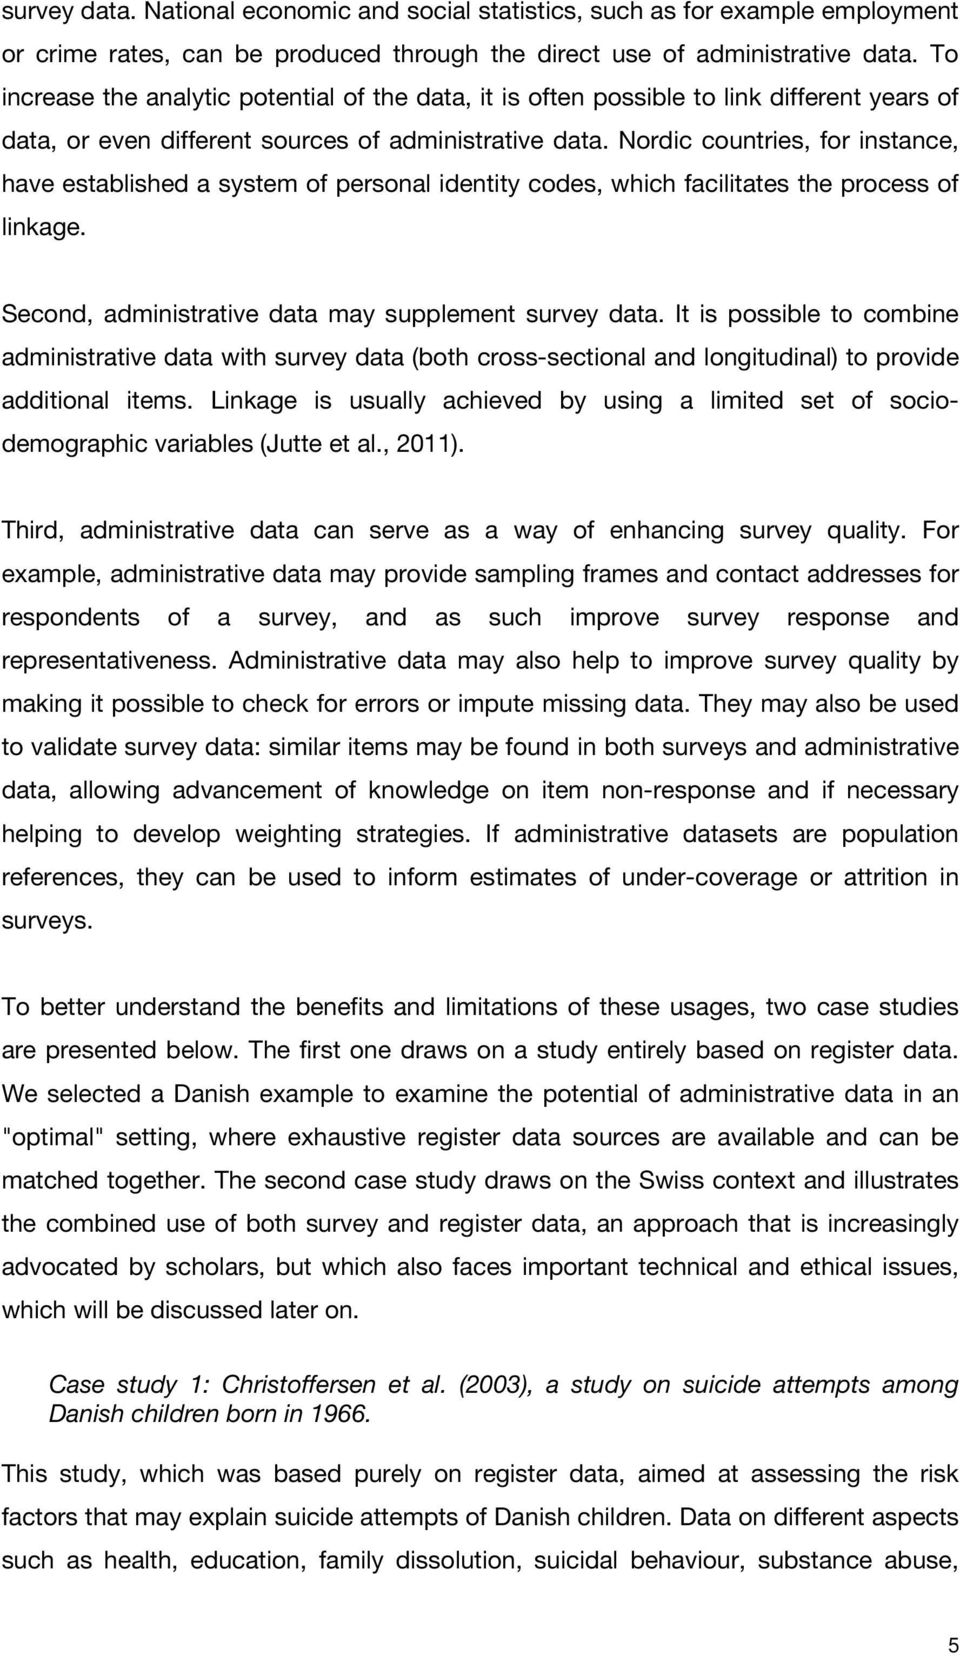 Nordic countries, for instance, have established a system of personal identity codes, which facilitates the process of linkage. Second, administrative data may supplement survey data.